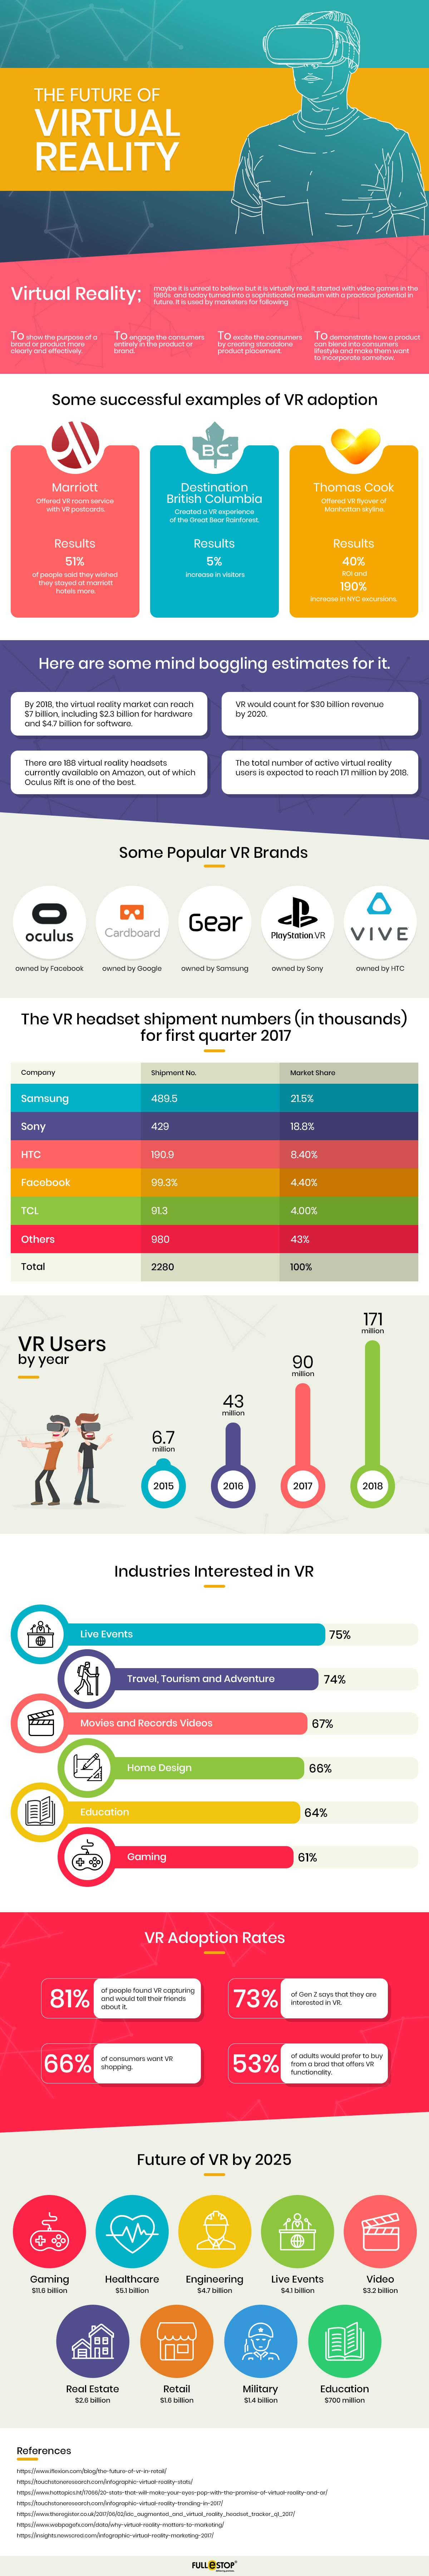 Infographic in the future of virtual reality